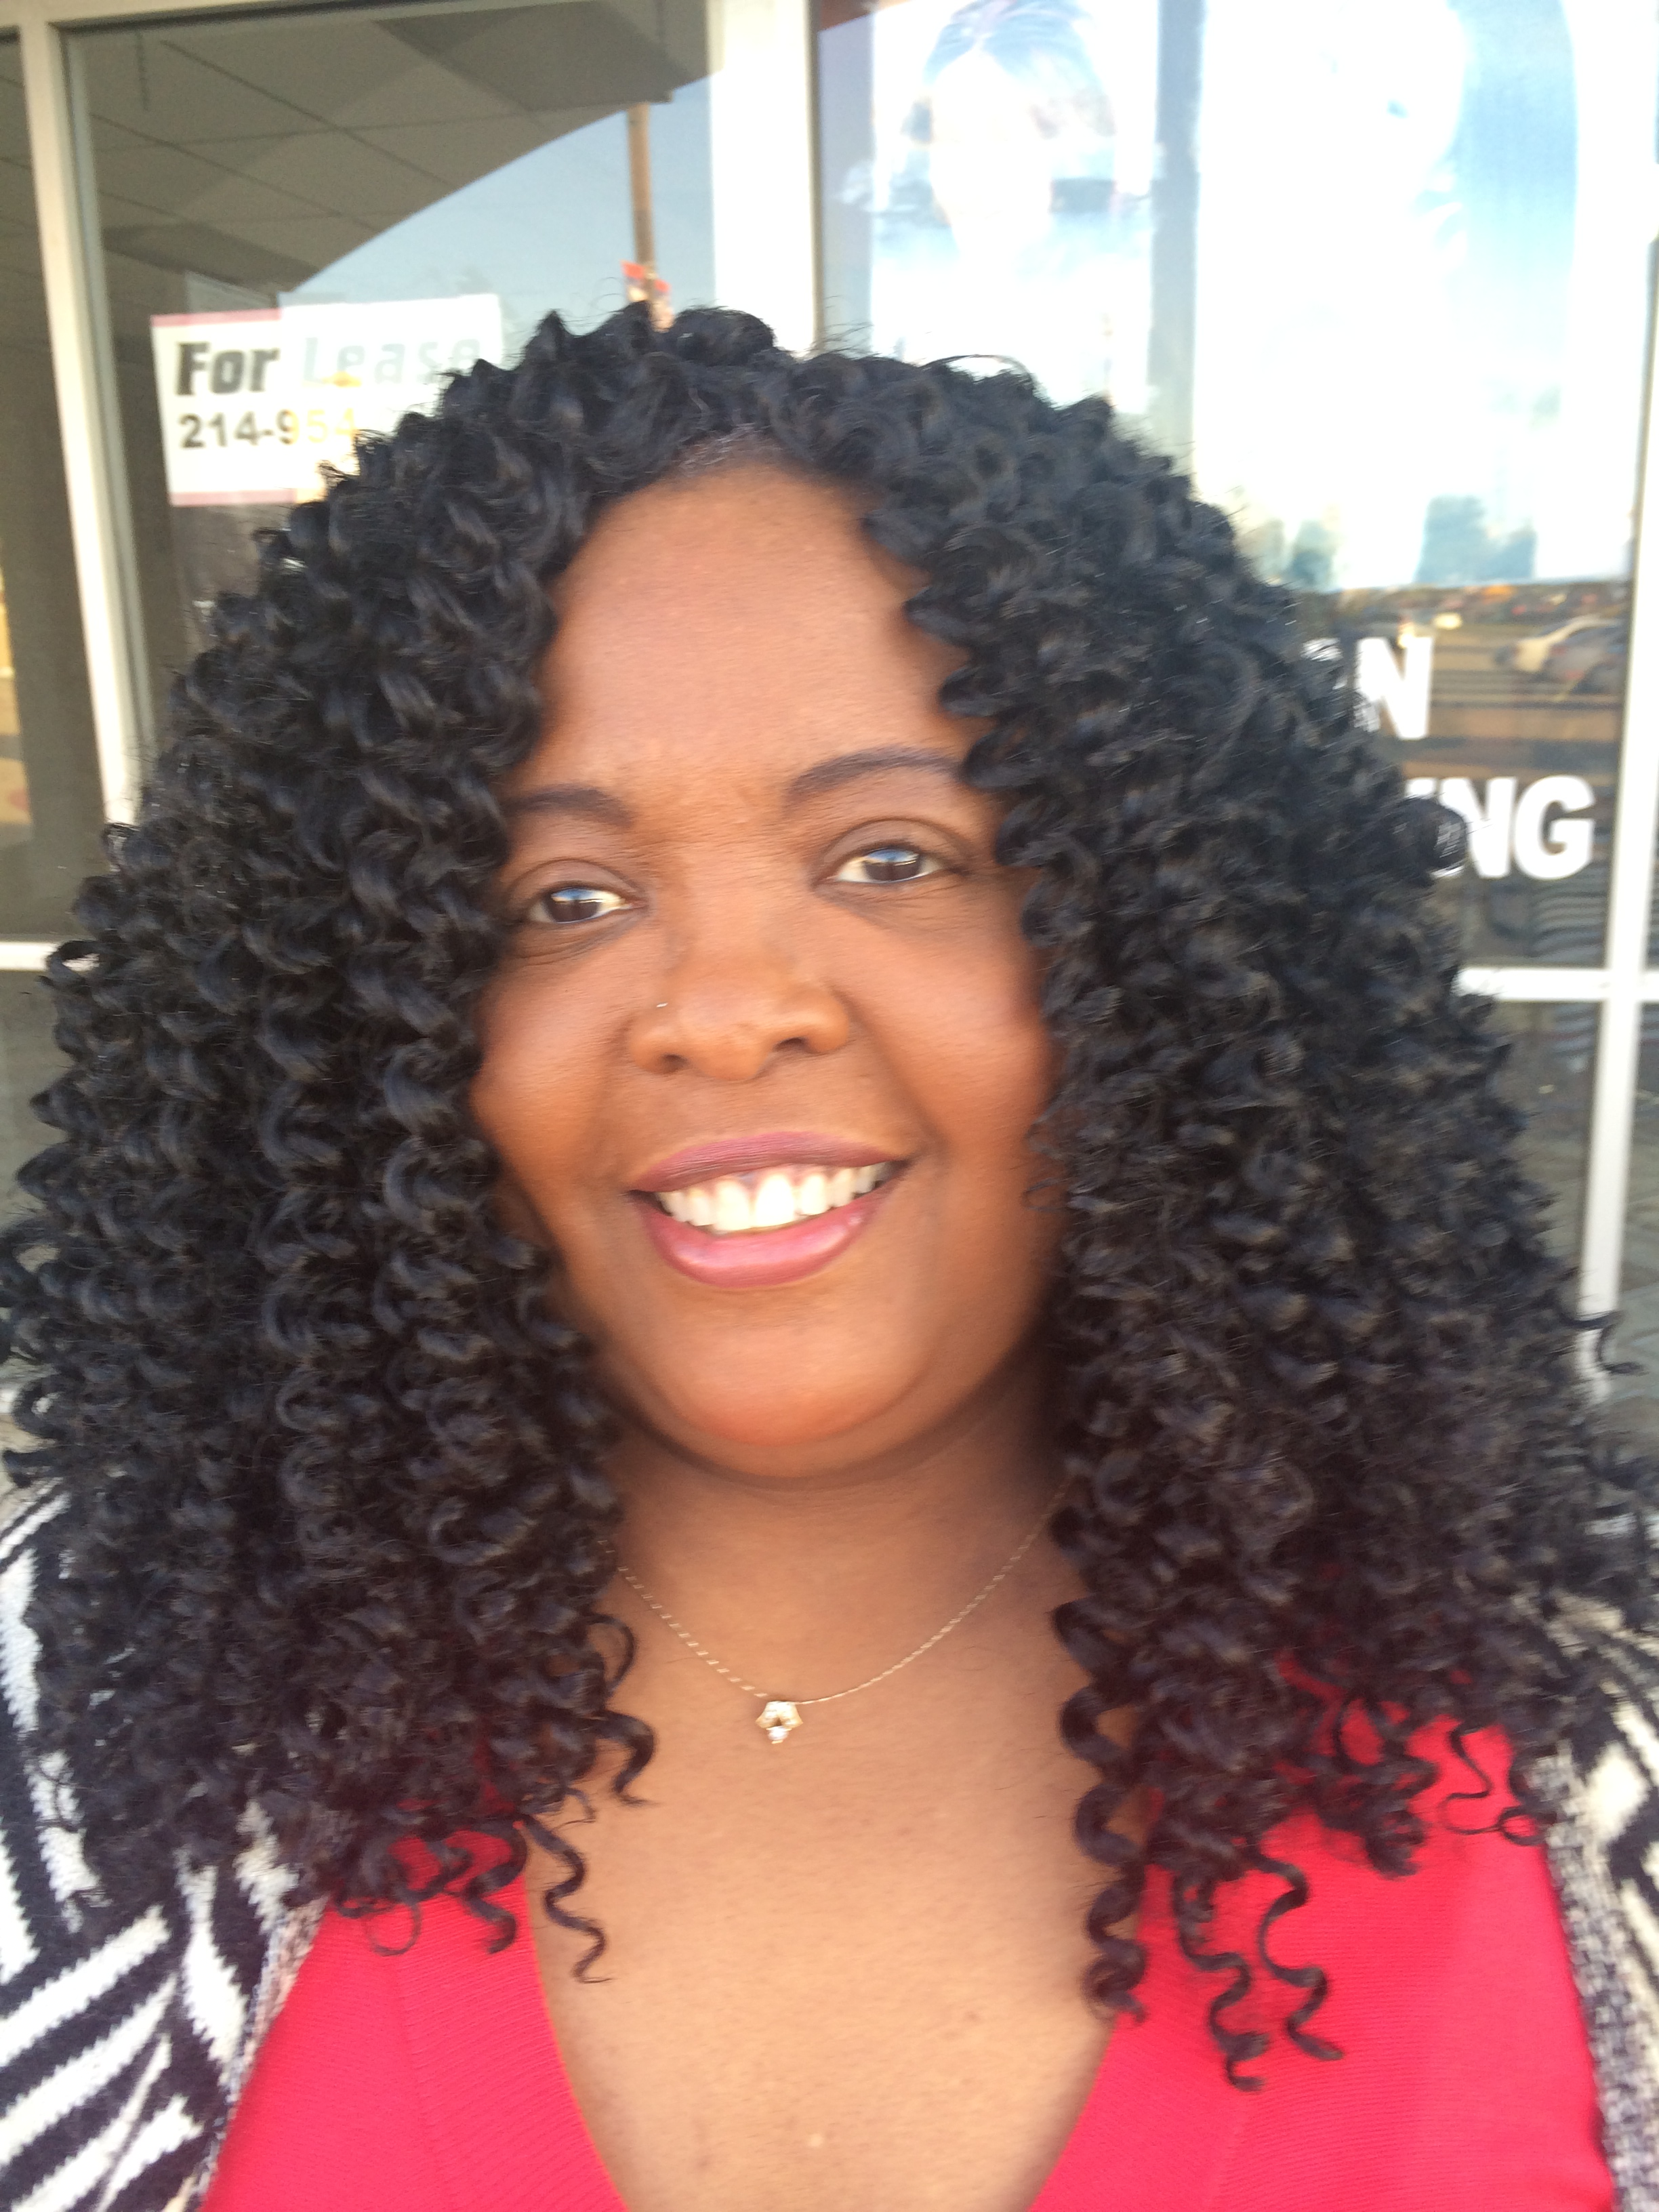 K 513 african glamour braids salon for Crochet braids salon